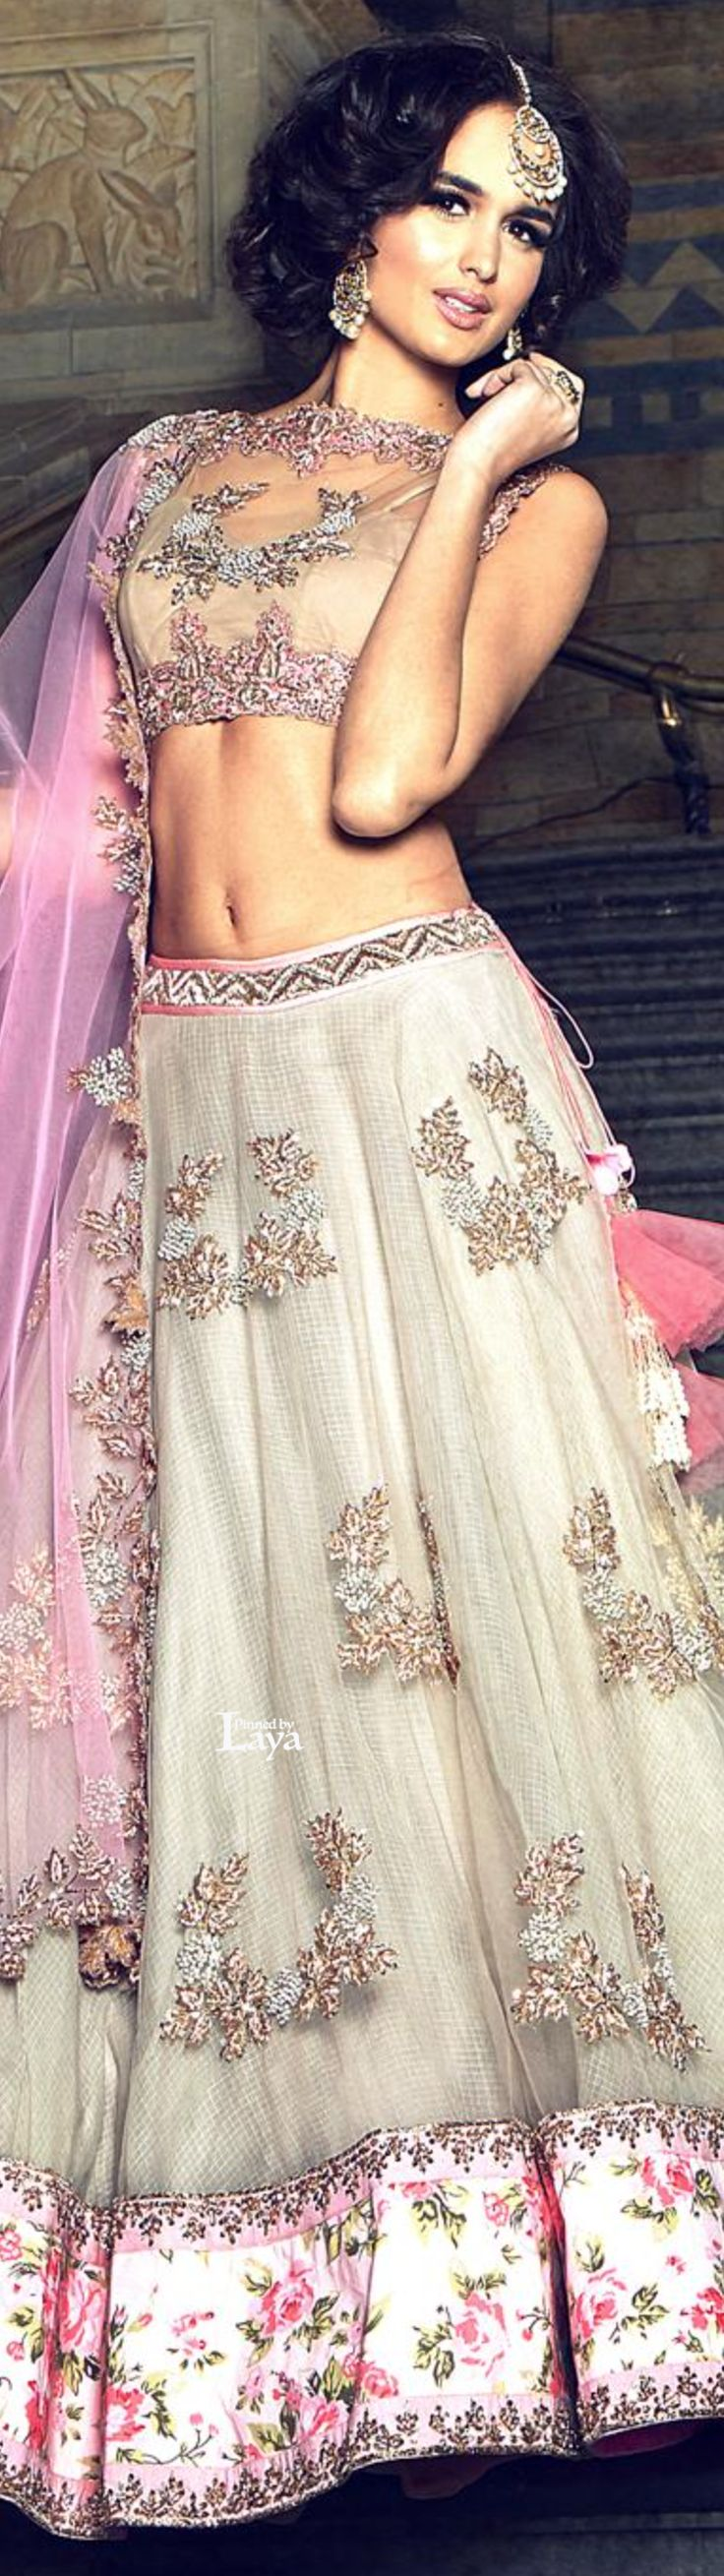 32 best Punjabi! images on Pinterest | India fashion, Indian suits ...